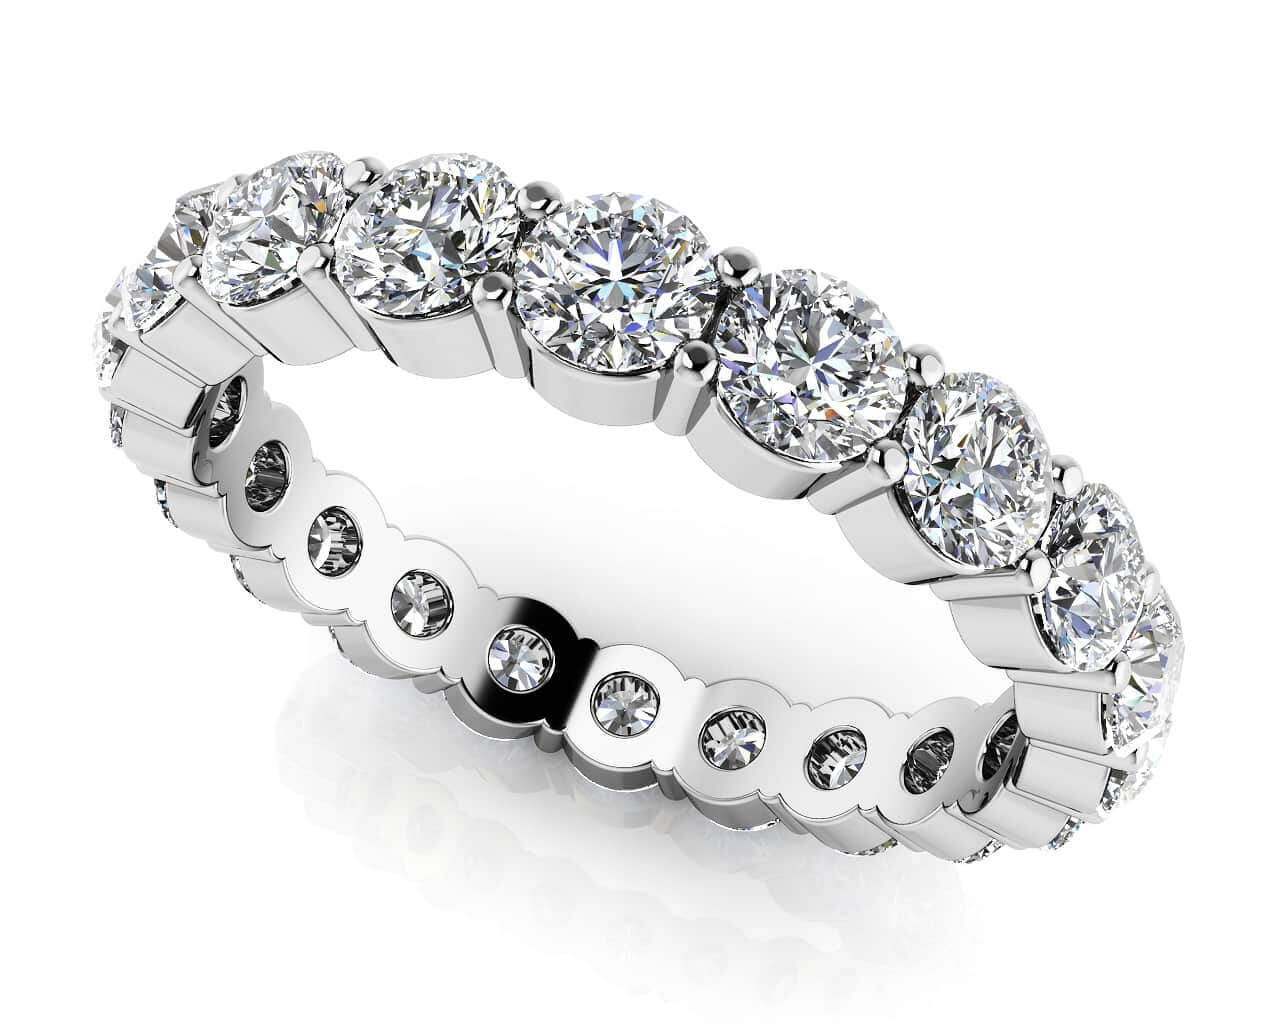 Diamond Eternity Rings & Bands With Regard To Most Recently Released Diamond Eternity Anniversary Vintage Style Bands In White Gold (Gallery 20 of 25)